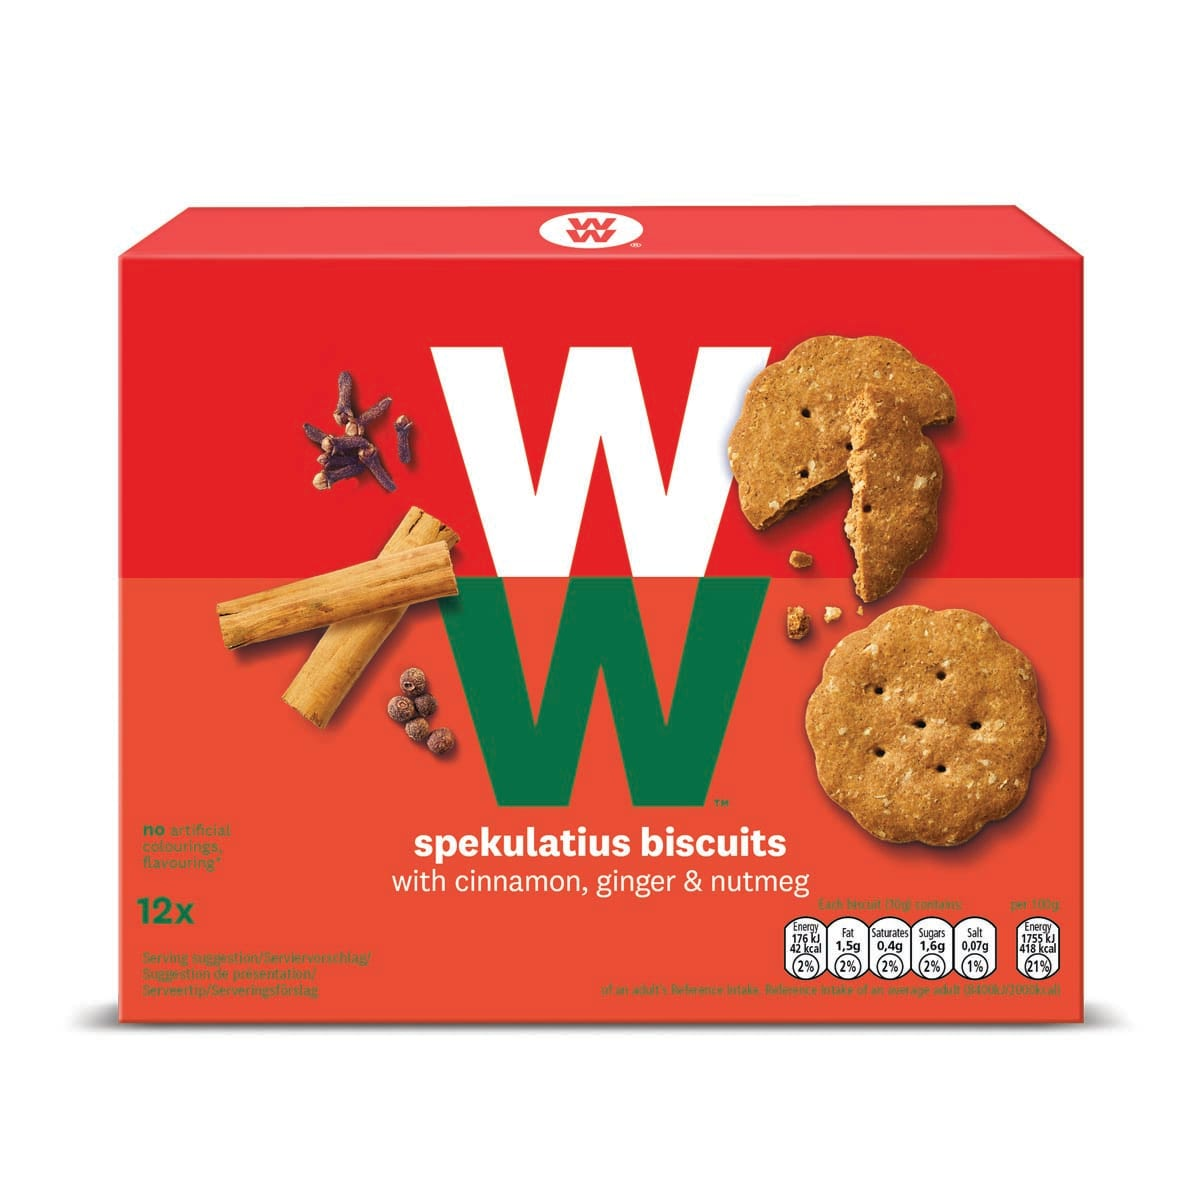 Box of 12, WW Spekulatius Biscuits, cinnamon, ginger and nutmeg, made with wheat, fava bean and oat flour, 1 SmartPoints value, suitable for vegetarians